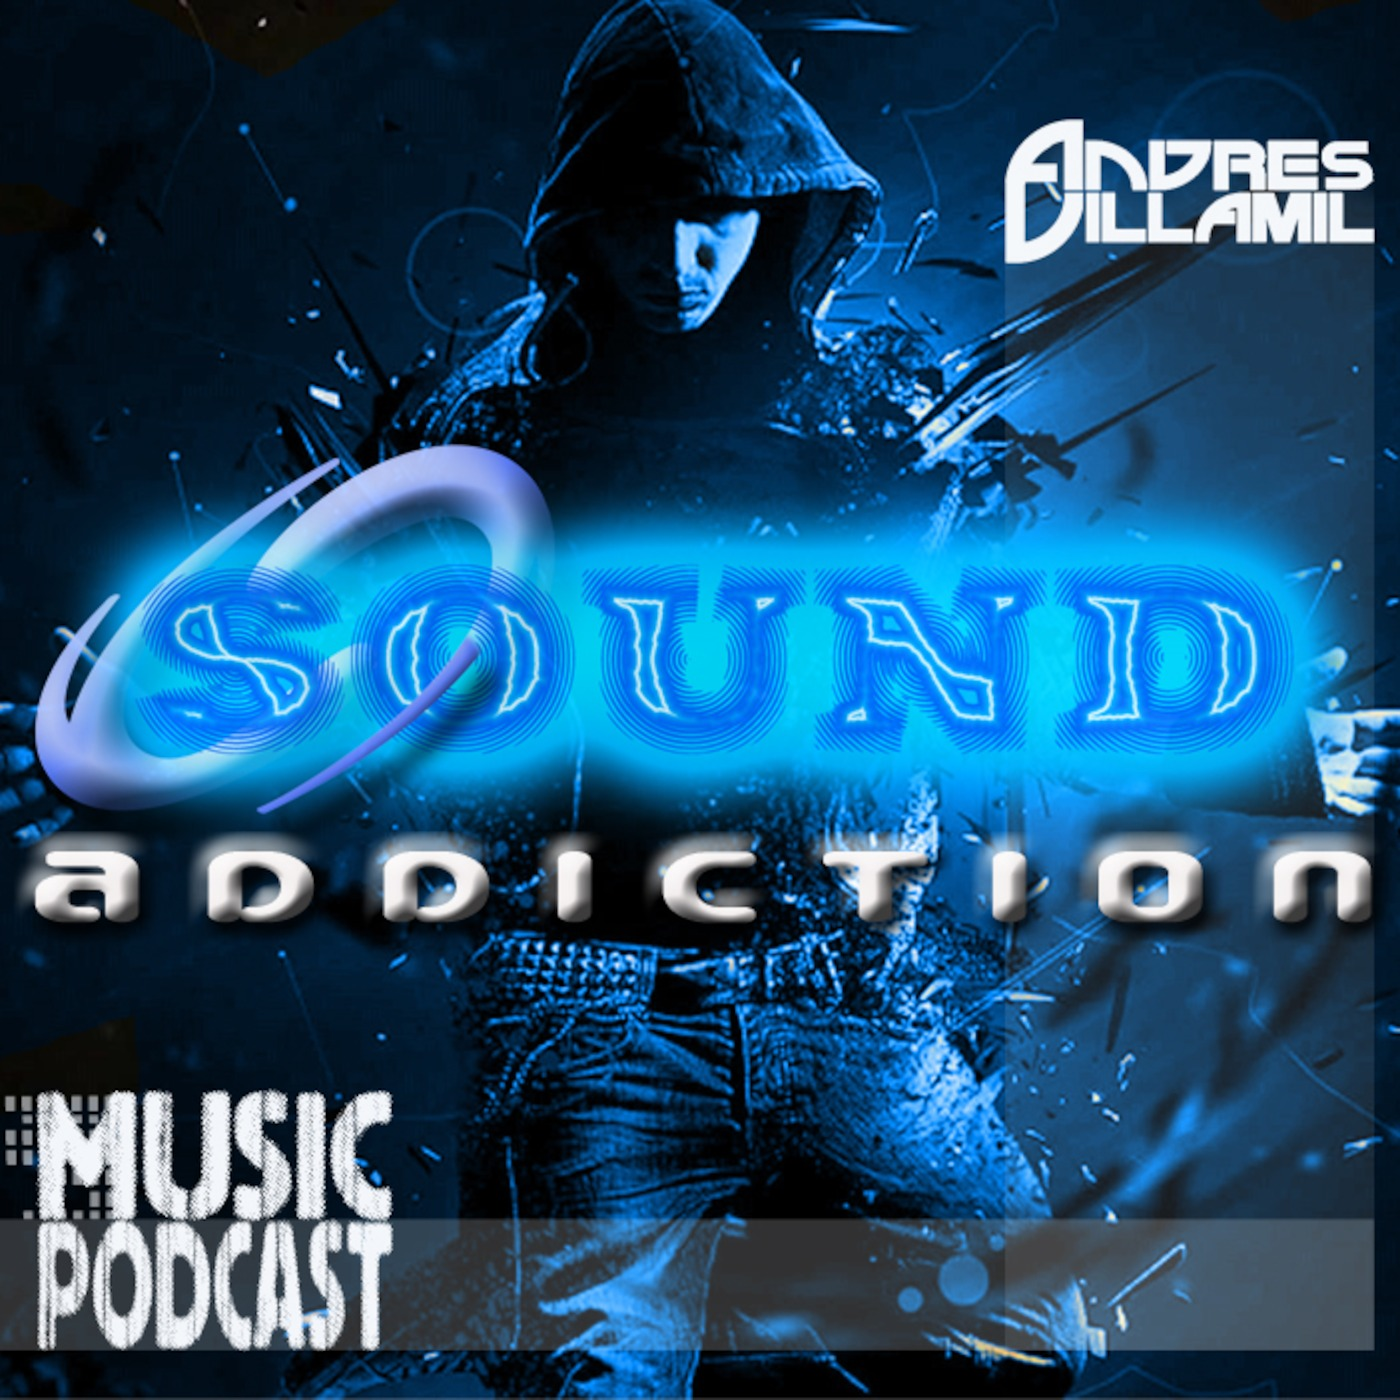 Sound Addiction Podcast